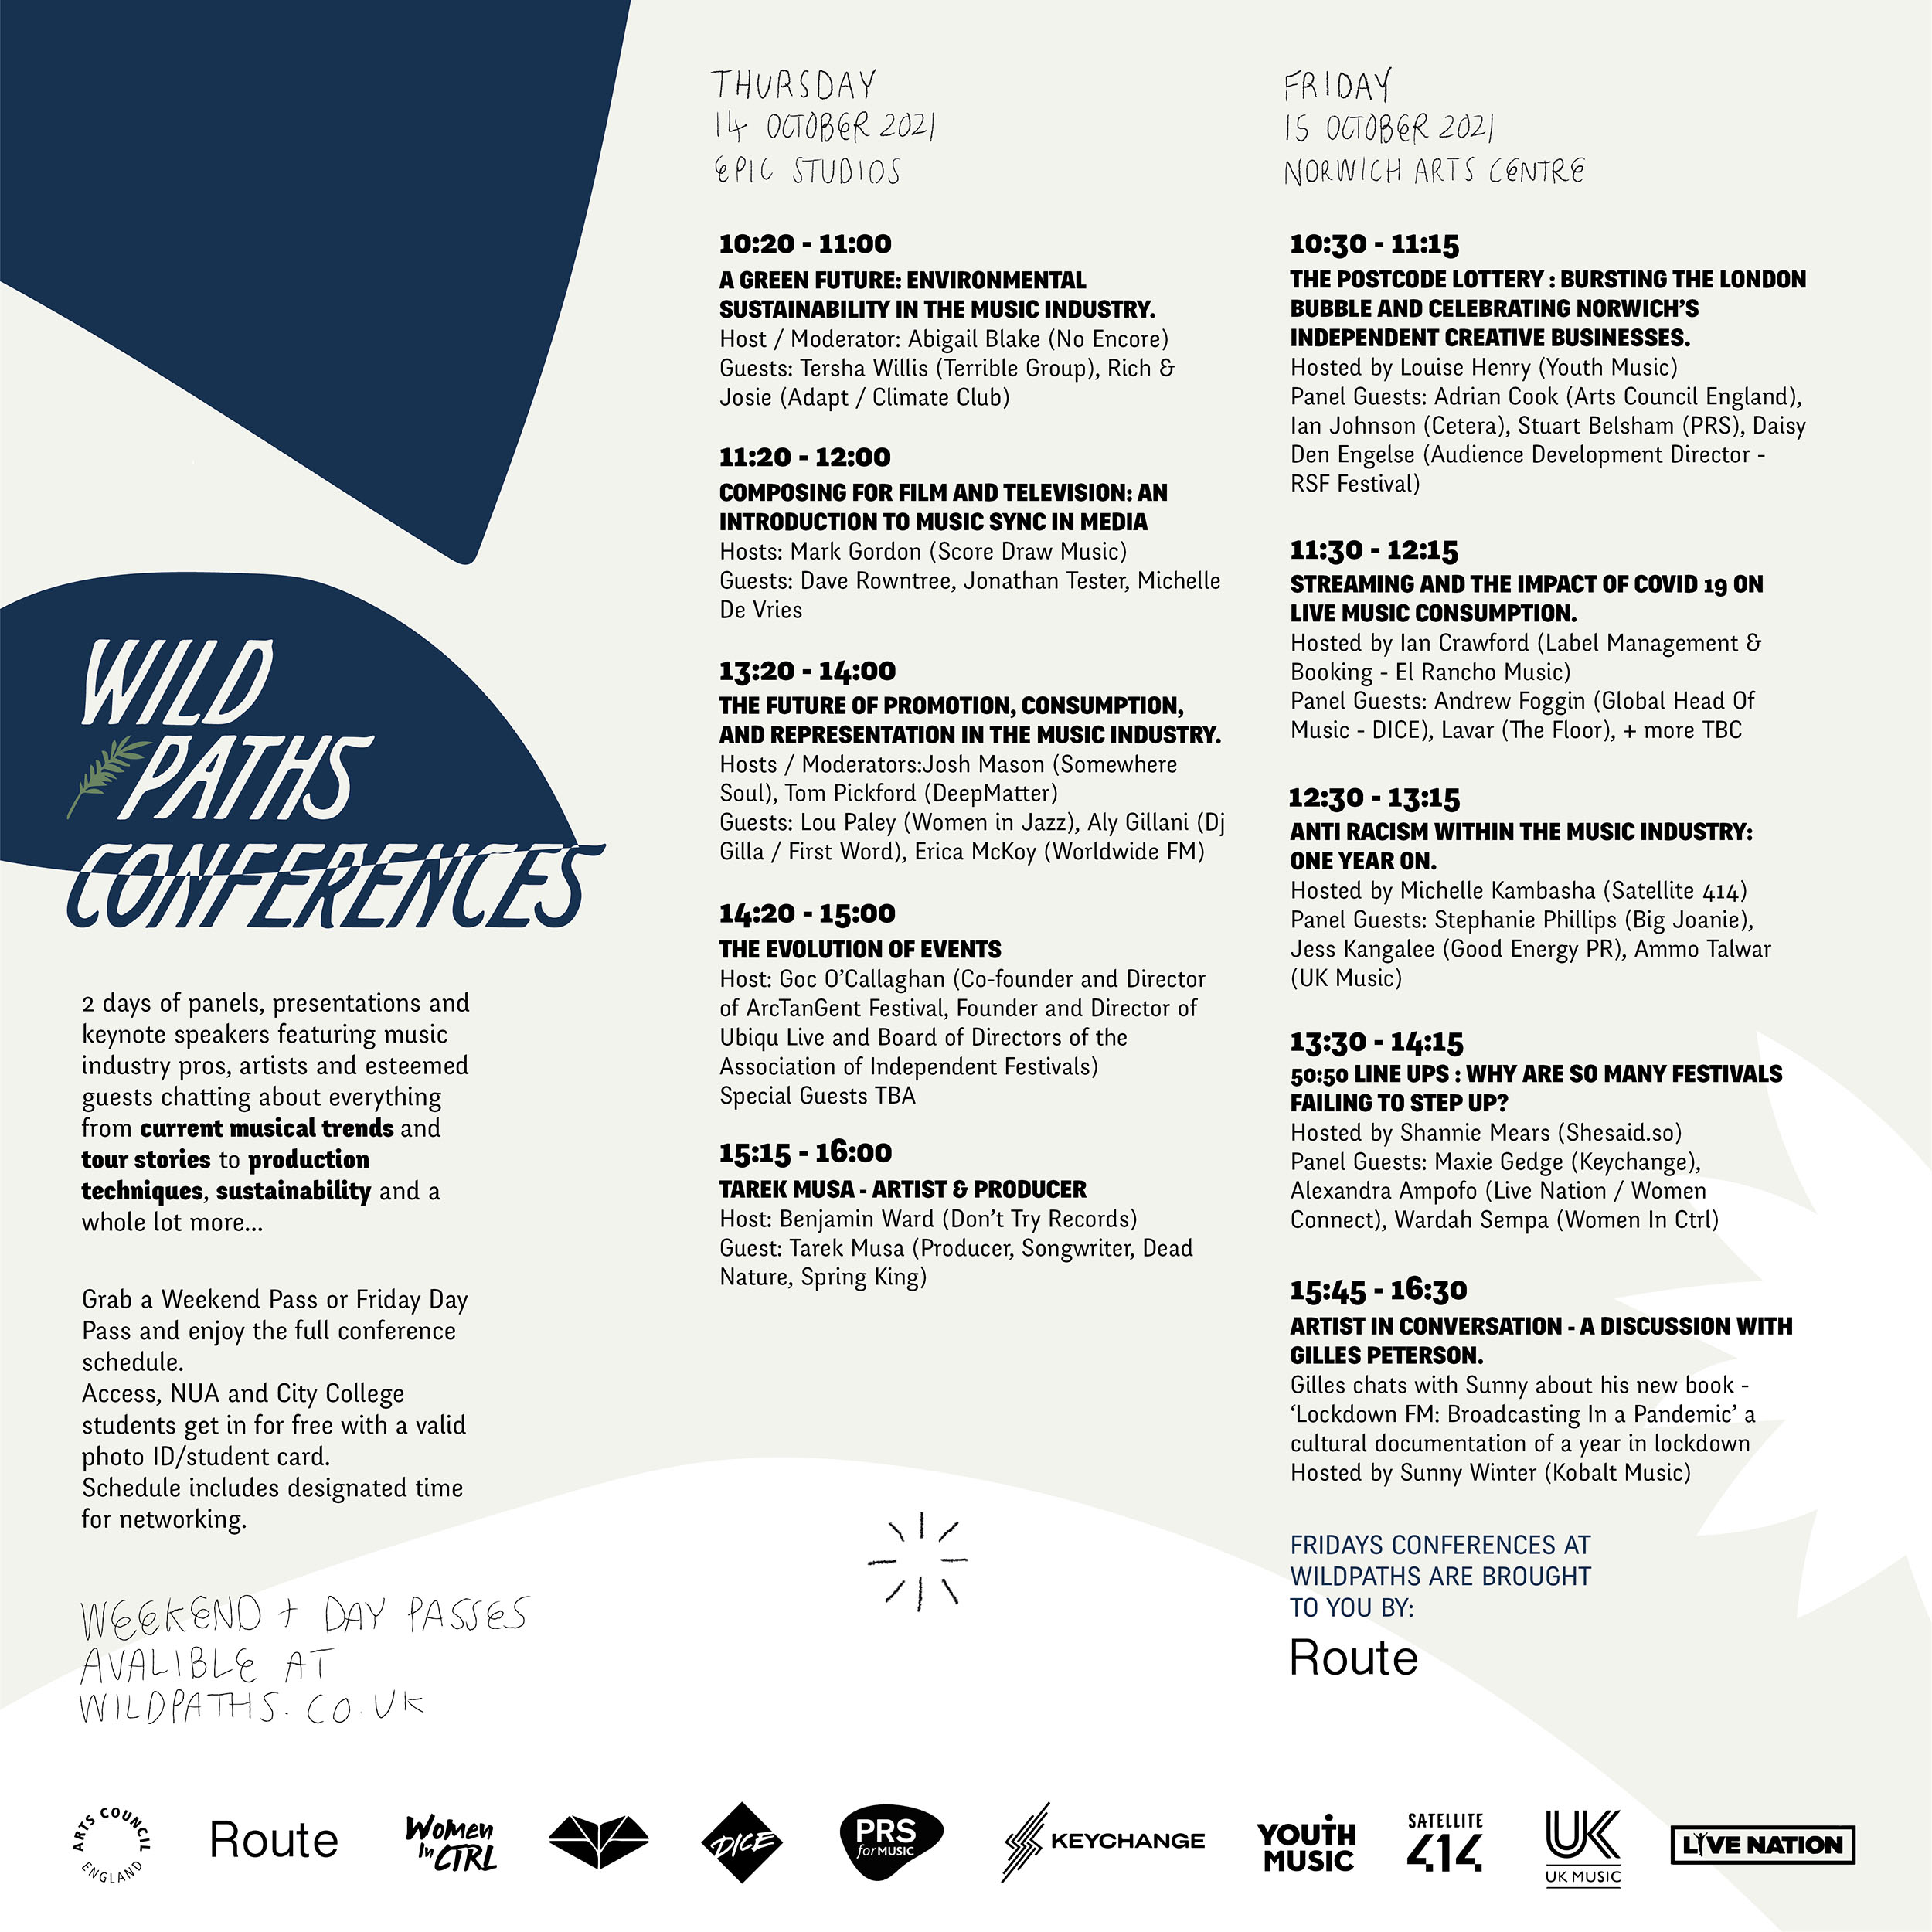 Wild Paths Conference 2021